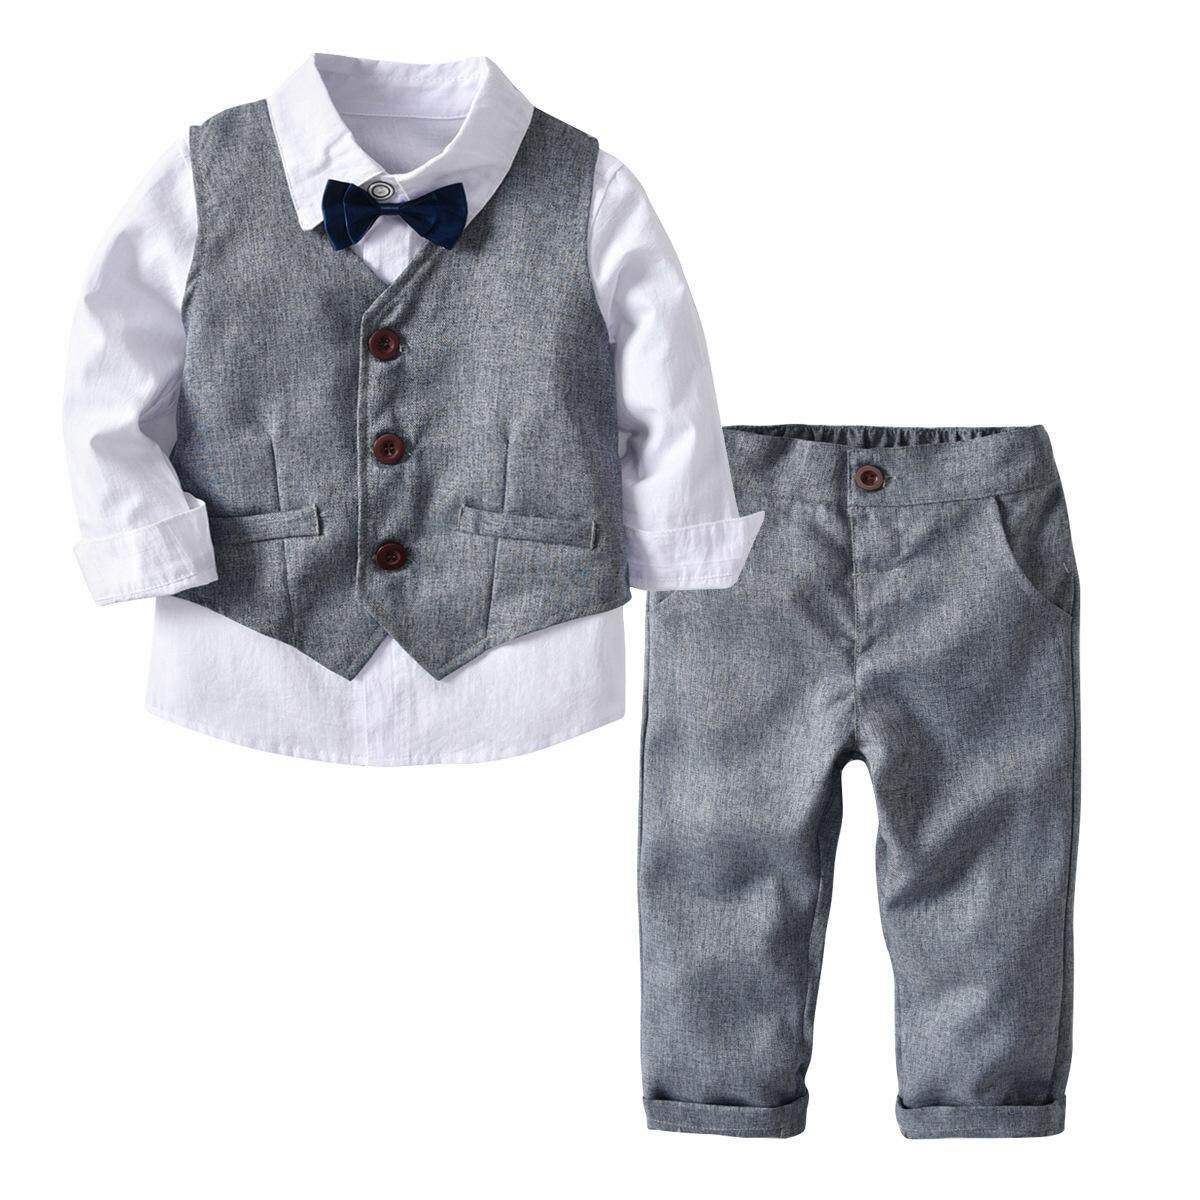 7d791ef1b6602 1 Set 3 PCS Autunm Spring Cotton Kids Boys Gentleman Outfit Suit Set  Handsome Bow